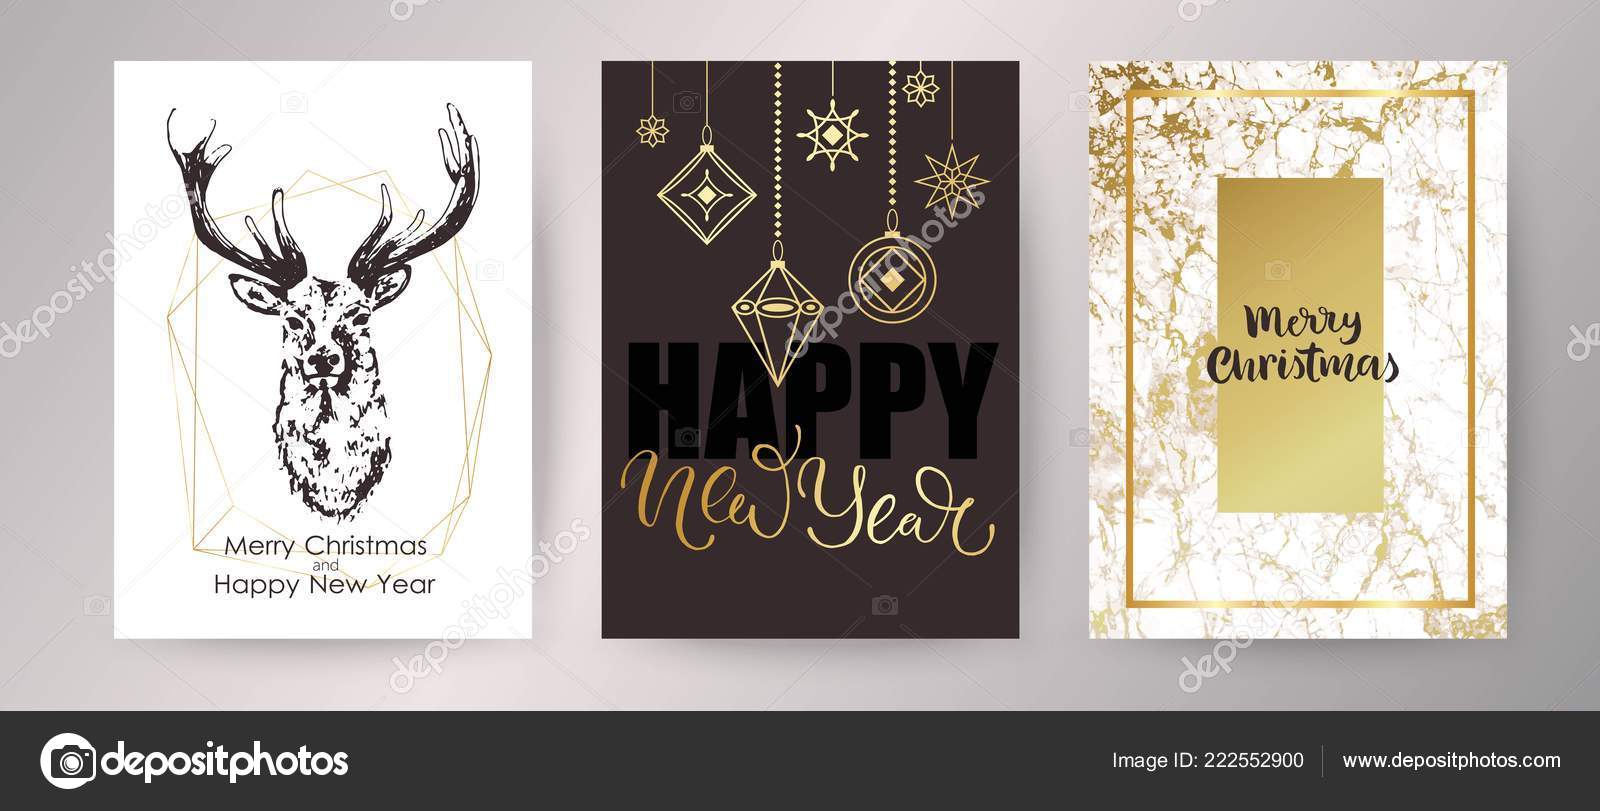 happy new year invitation design black and gold marble background hand drawn rustic holiday decor winter seasonal lettering vector by olga_c